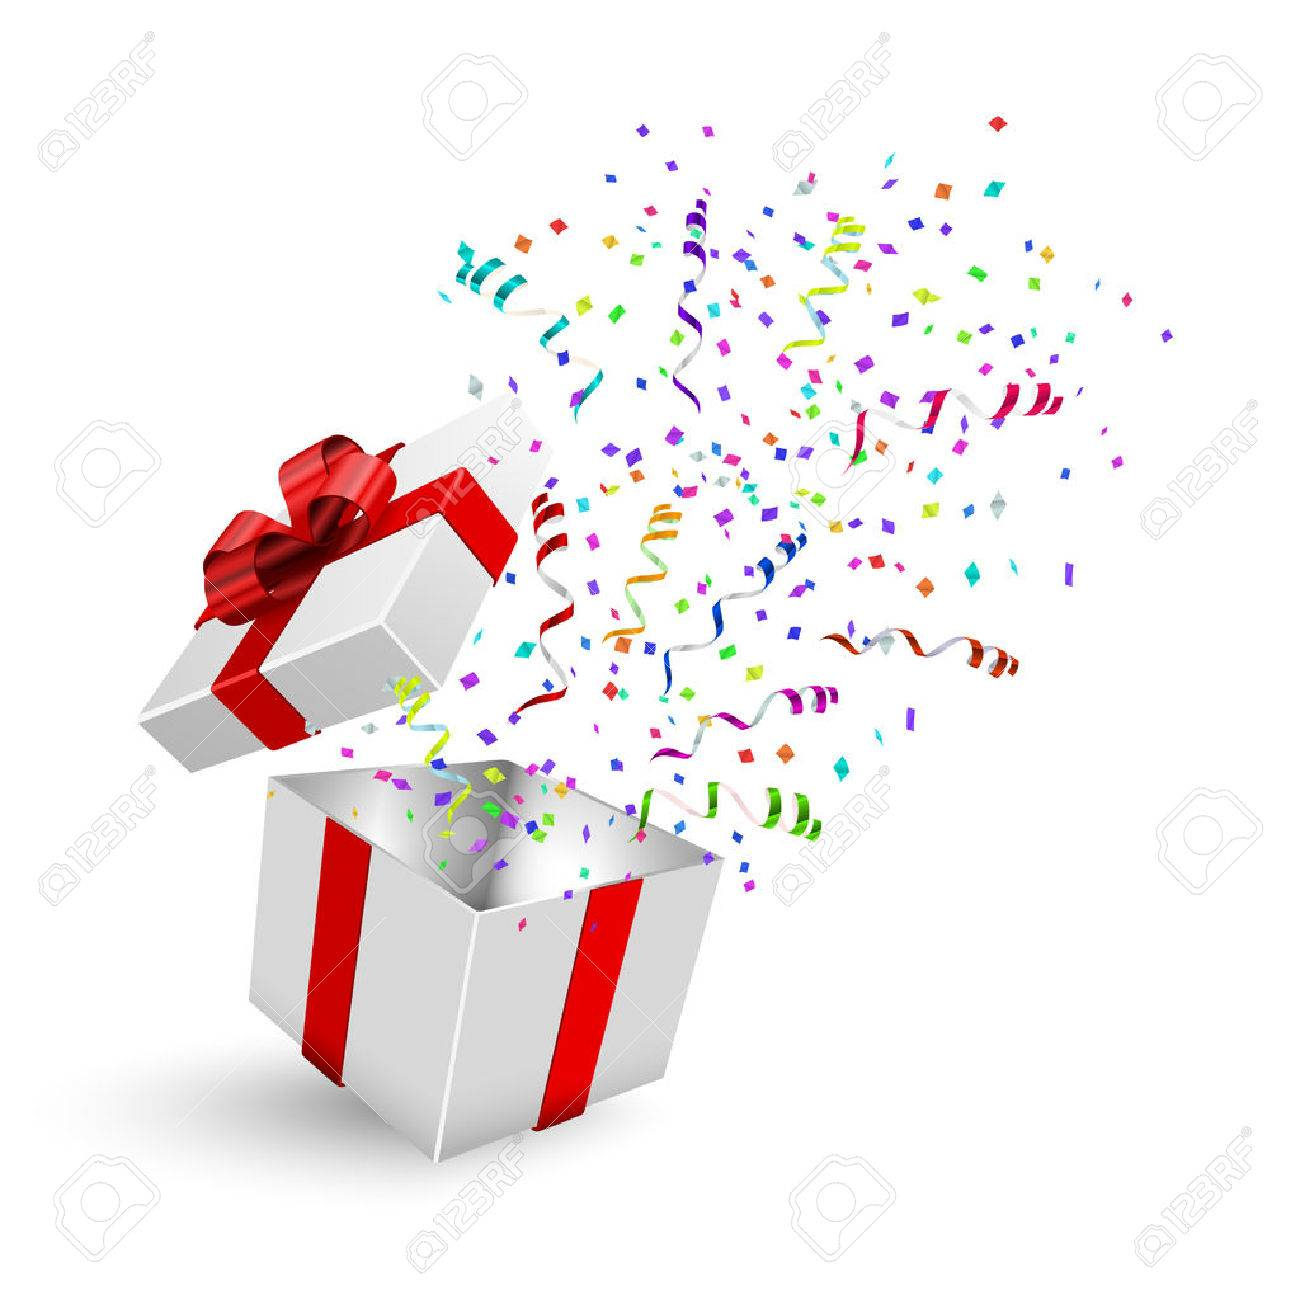 Opened 3d realistic gift box with red bow and confetti. Vector illustration. - 48218531